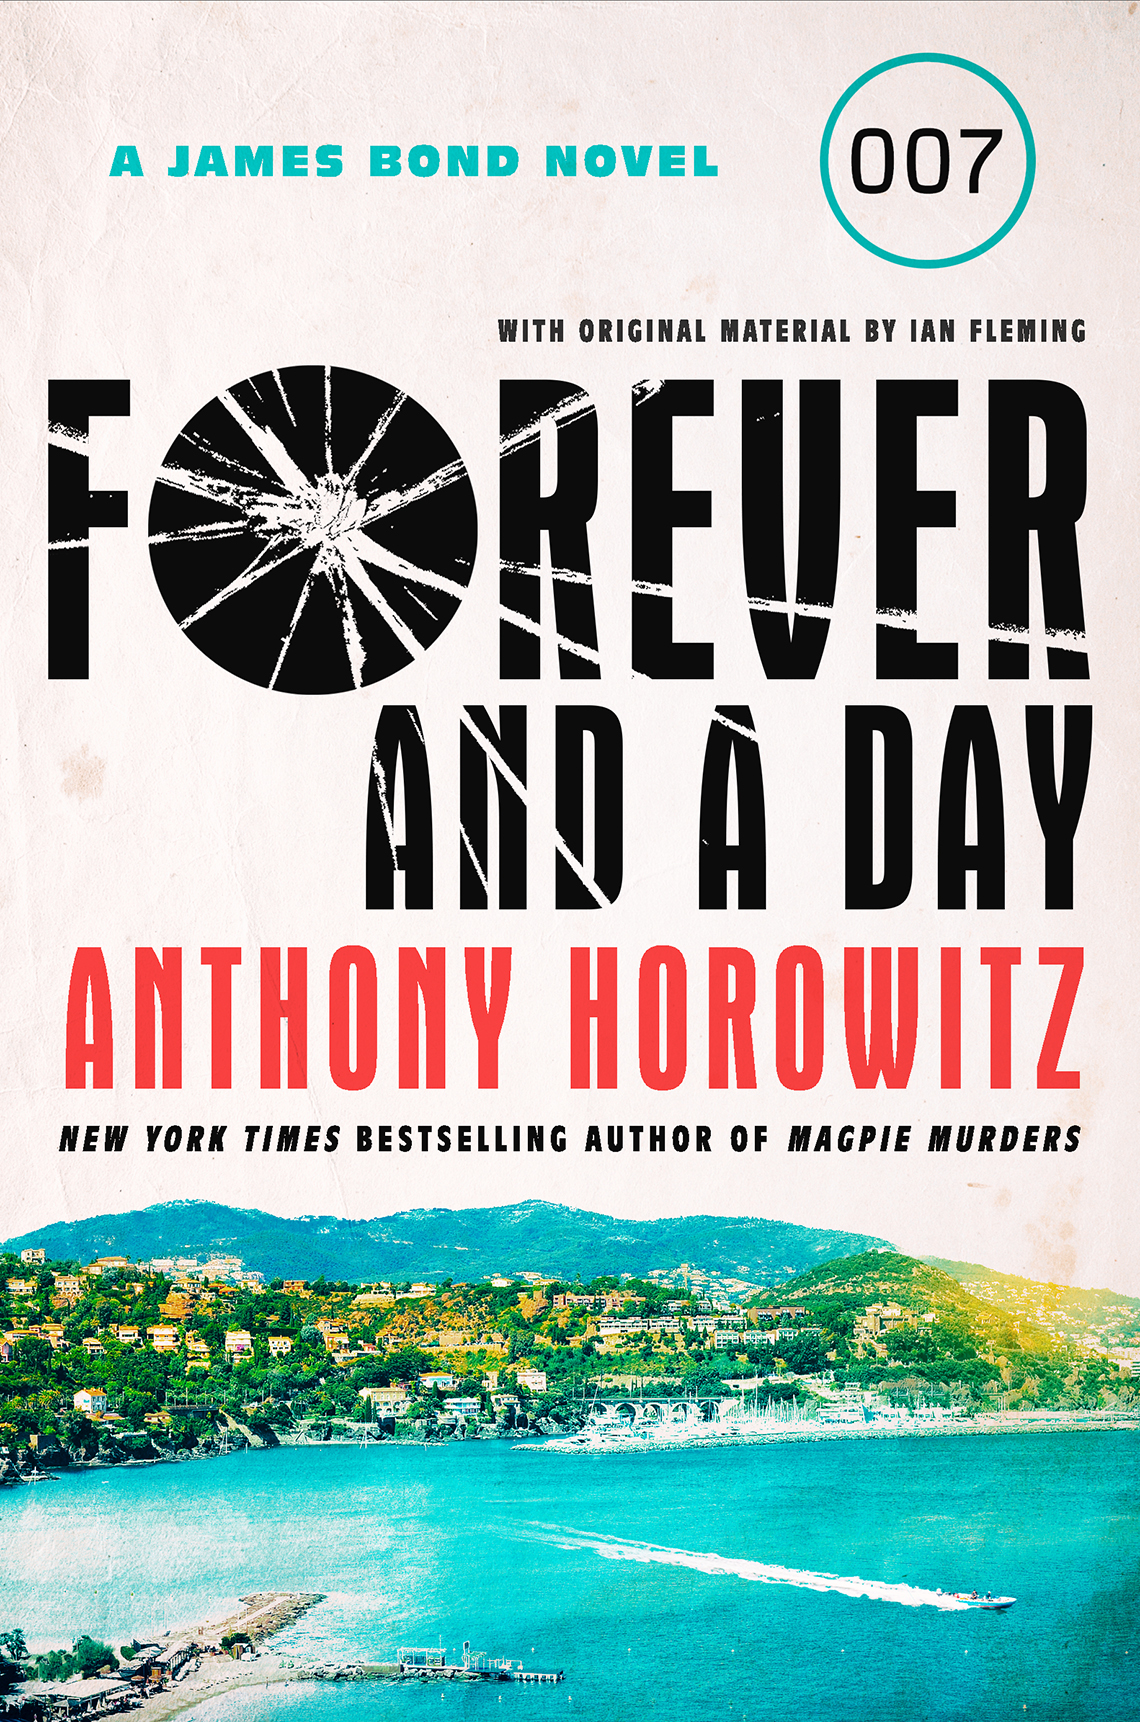 """Book cover that reads """"A James Bond Novel, 007, Forever and a Day, Anthony Horowitz"""